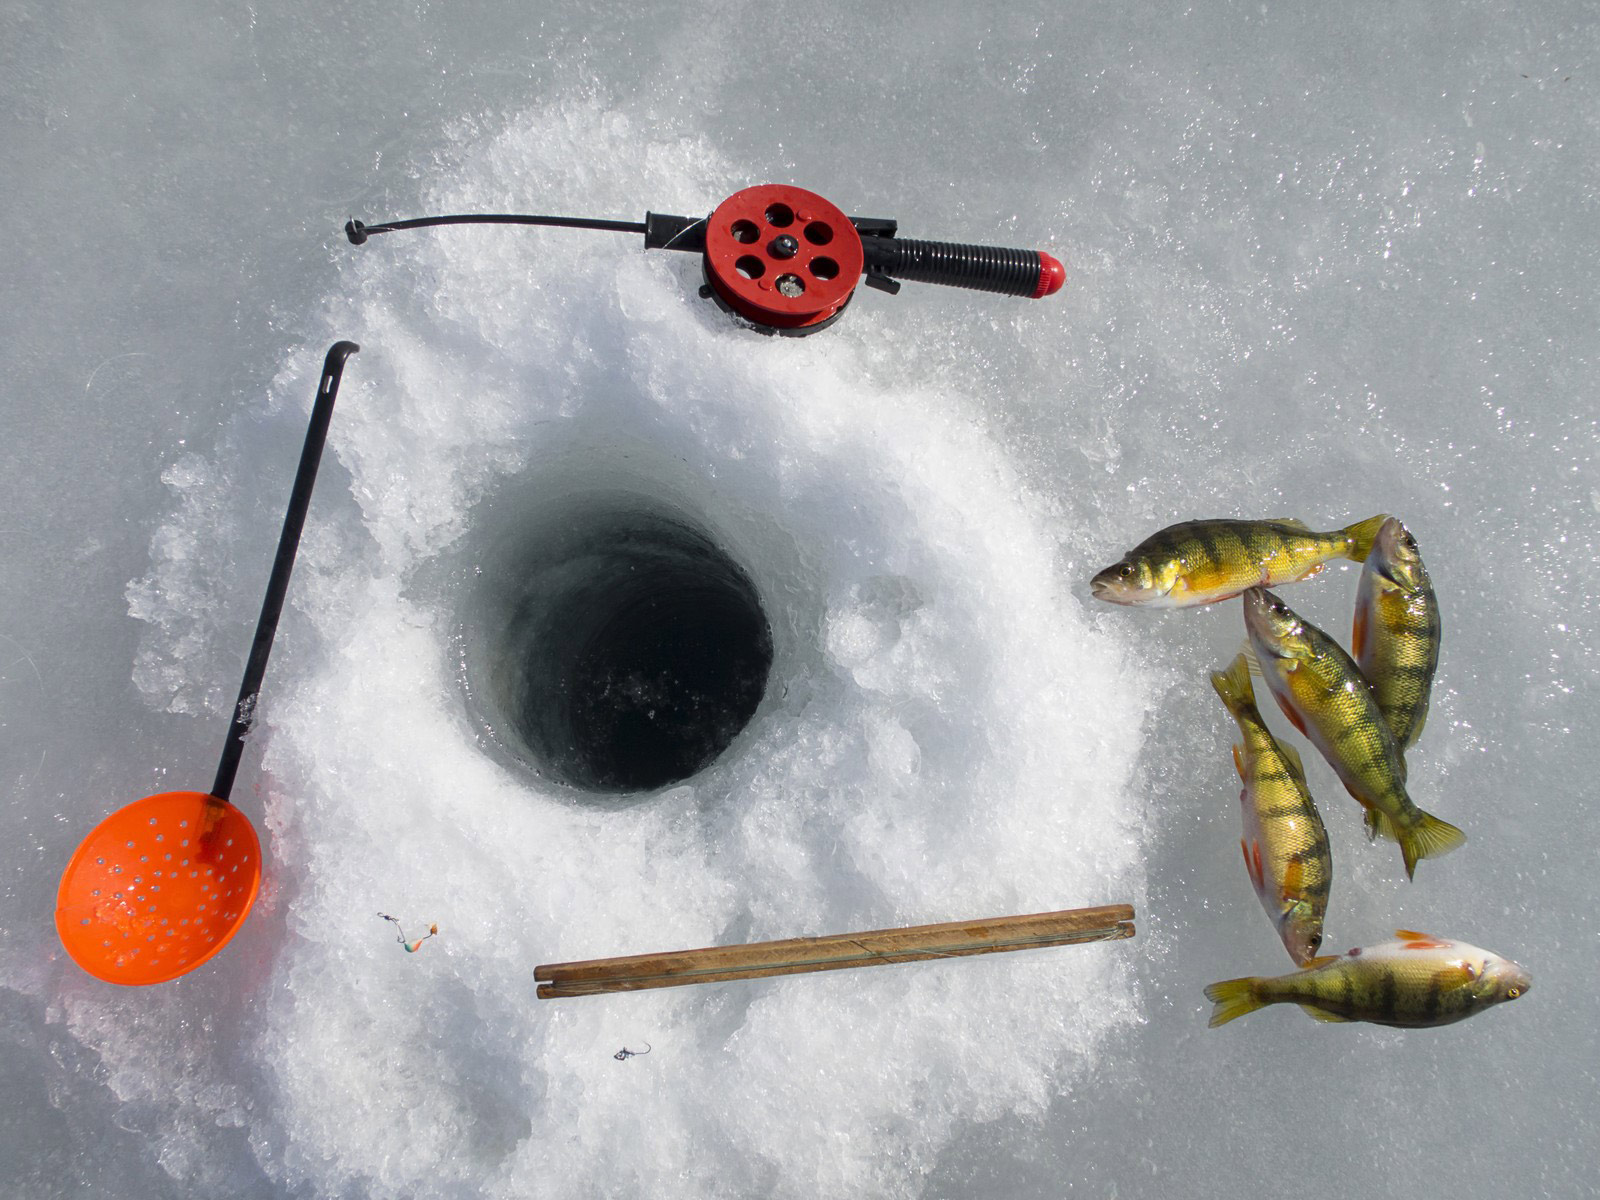 Freshwater fish near me - Ice Fishing